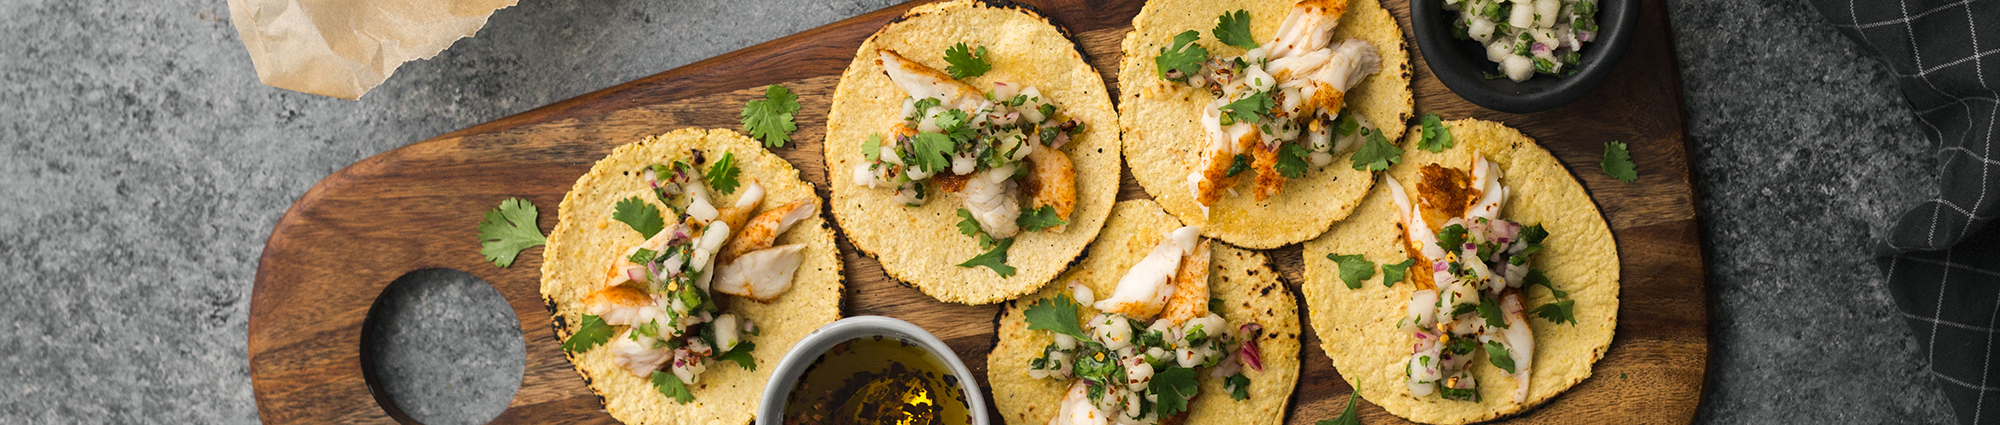 Mini Fish Tacos with Bartlett Pear Salsa & Chili Drizzle